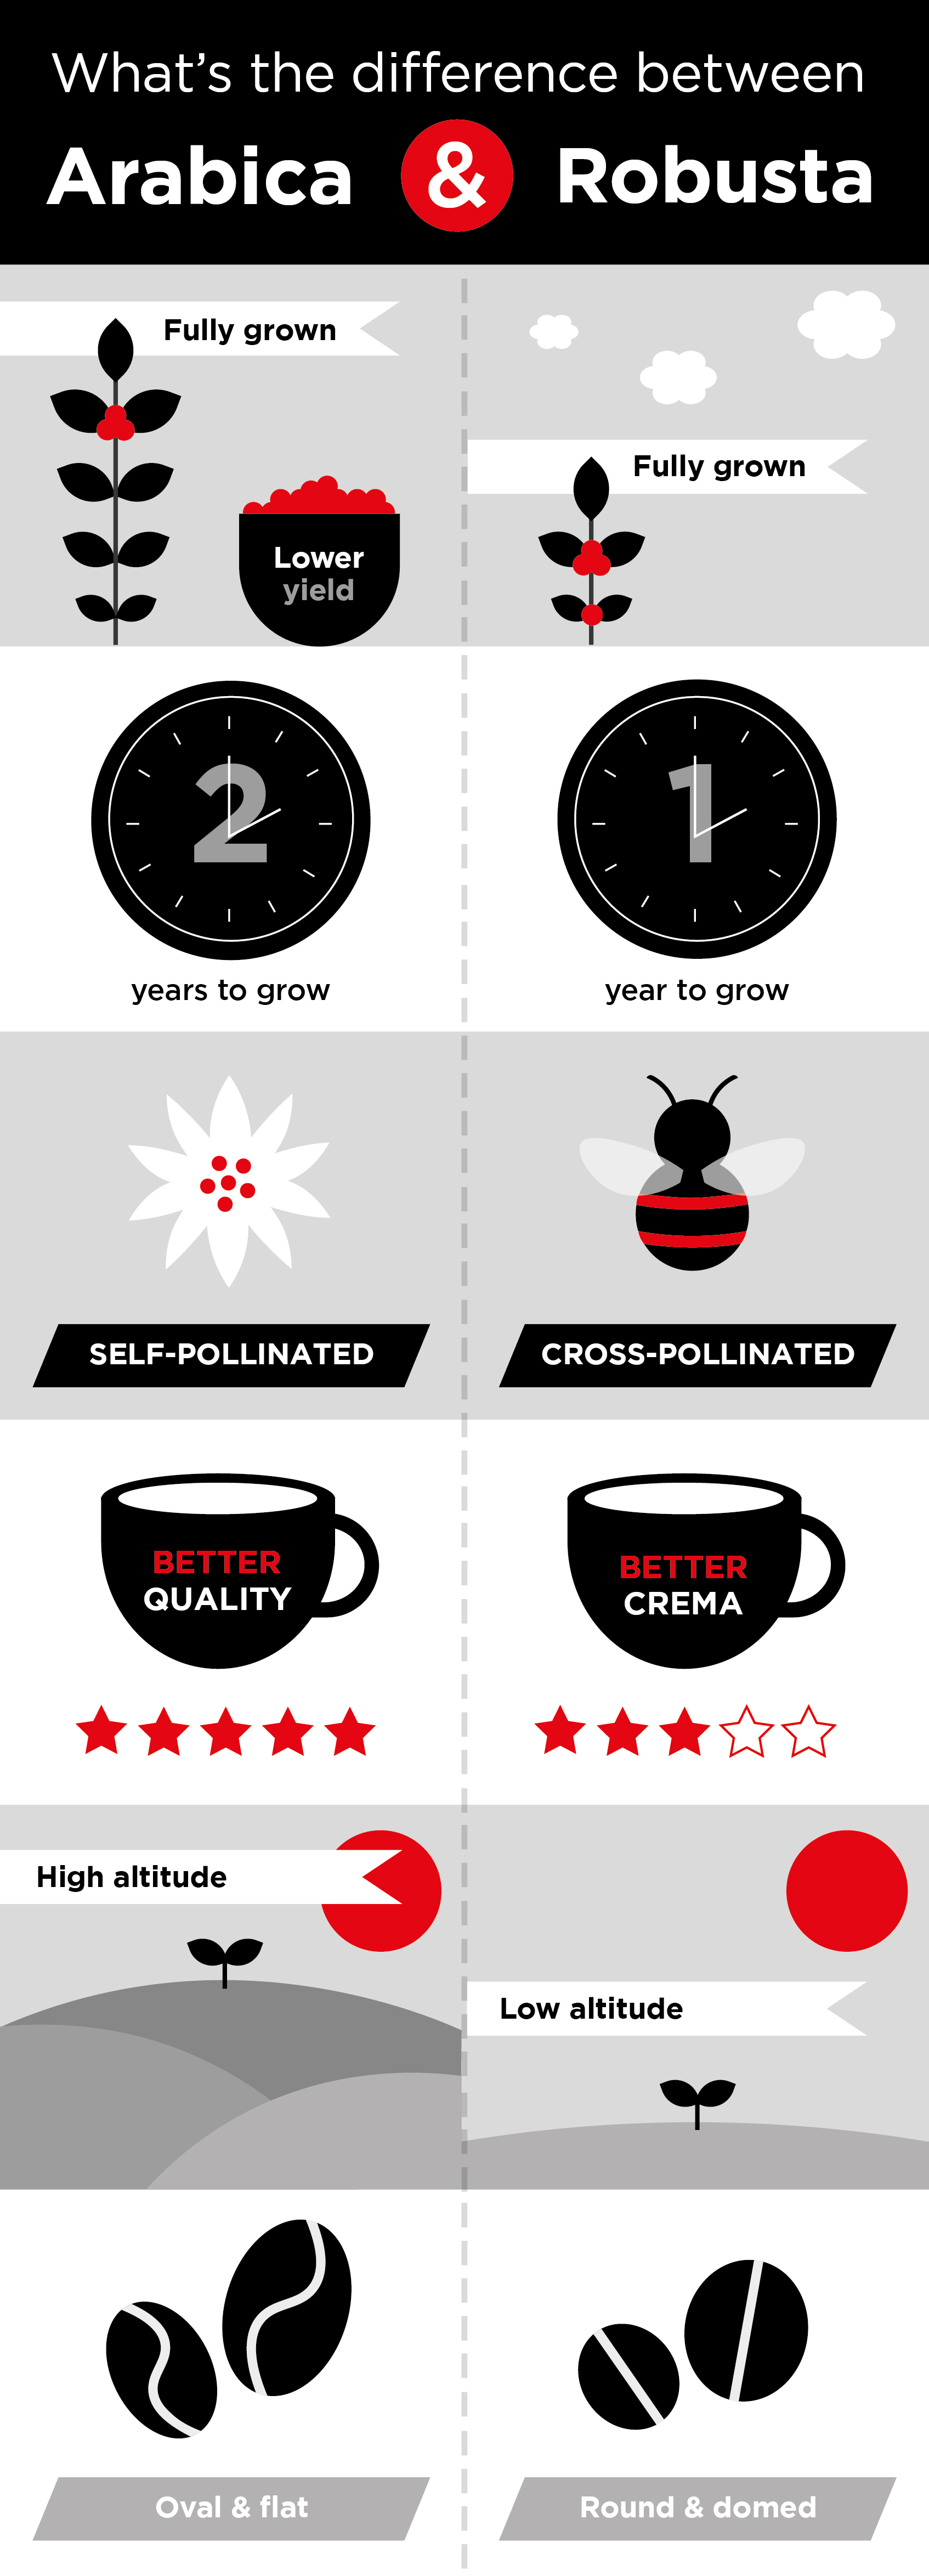 arabica and robusta coffee differences